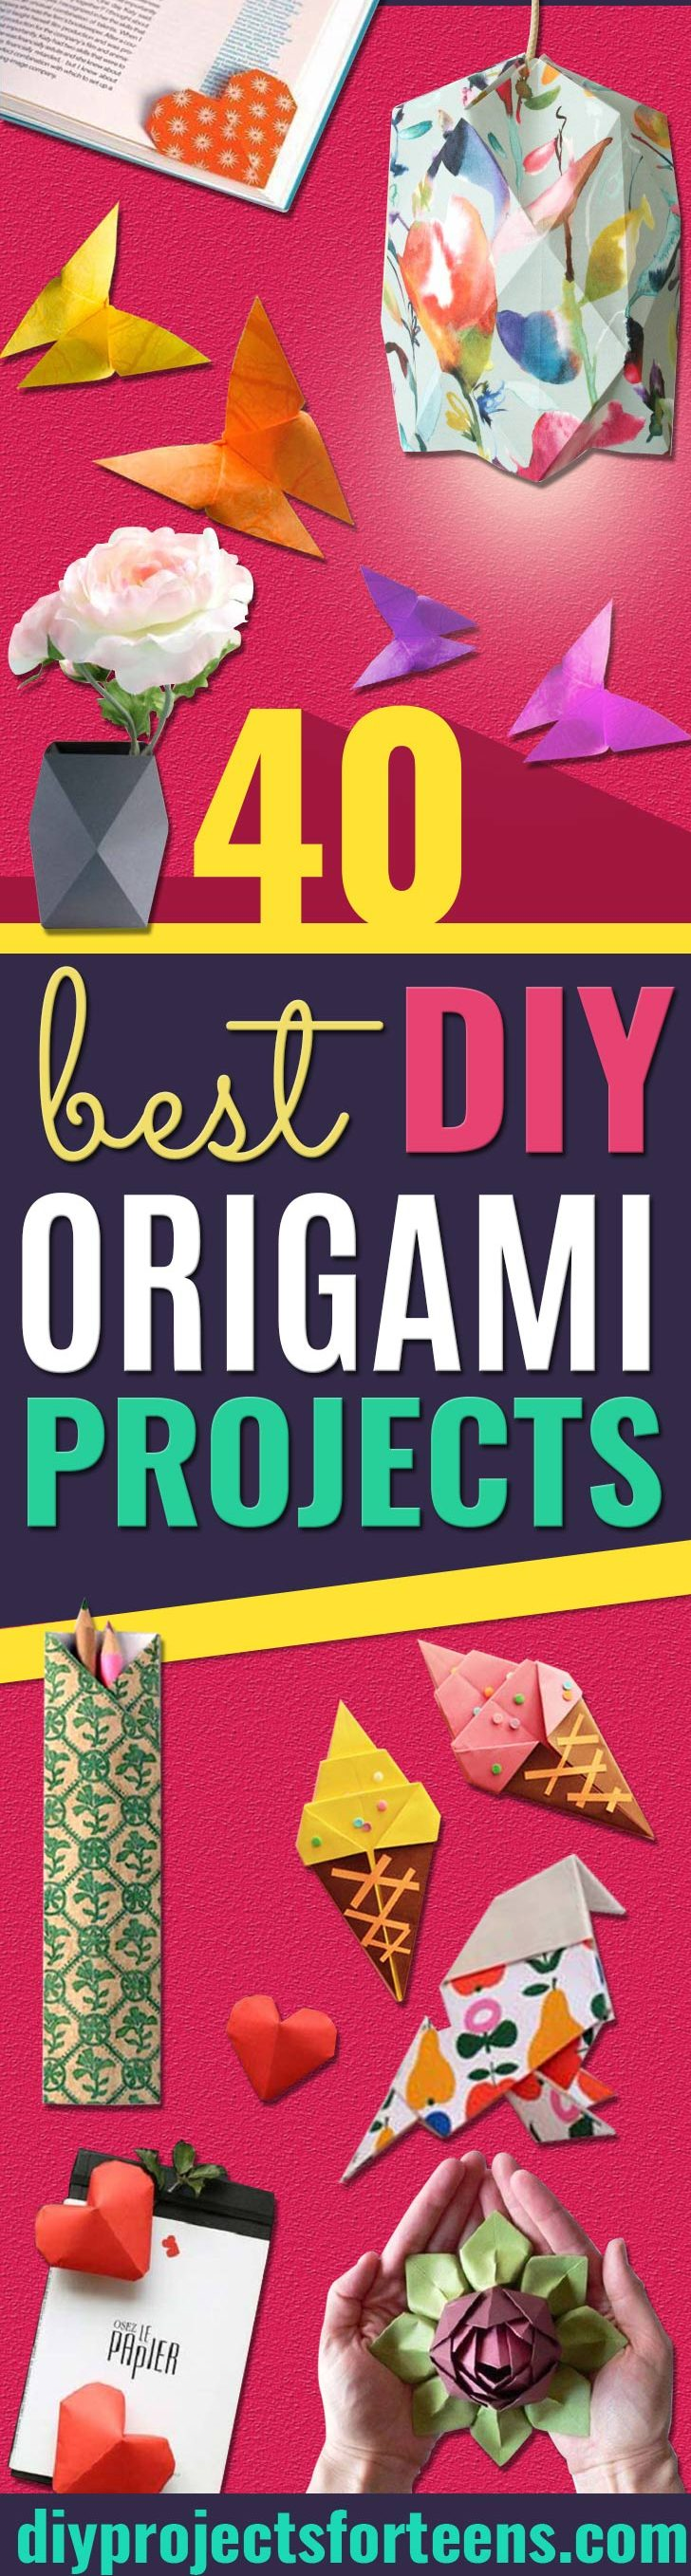 Origami Tutorials Step by Step - Easy DIY Origami Tutorial Projects for With Instructions for Flowers, Dog, Gift Box, Star, Owl, Buttlerfly, Heart and Bookmark, Animals - Fun Paper Crafts for Teens, Kids and Adults - Cool Teen Crafts That Are Cheap #teencrafts #origami #papercrafts